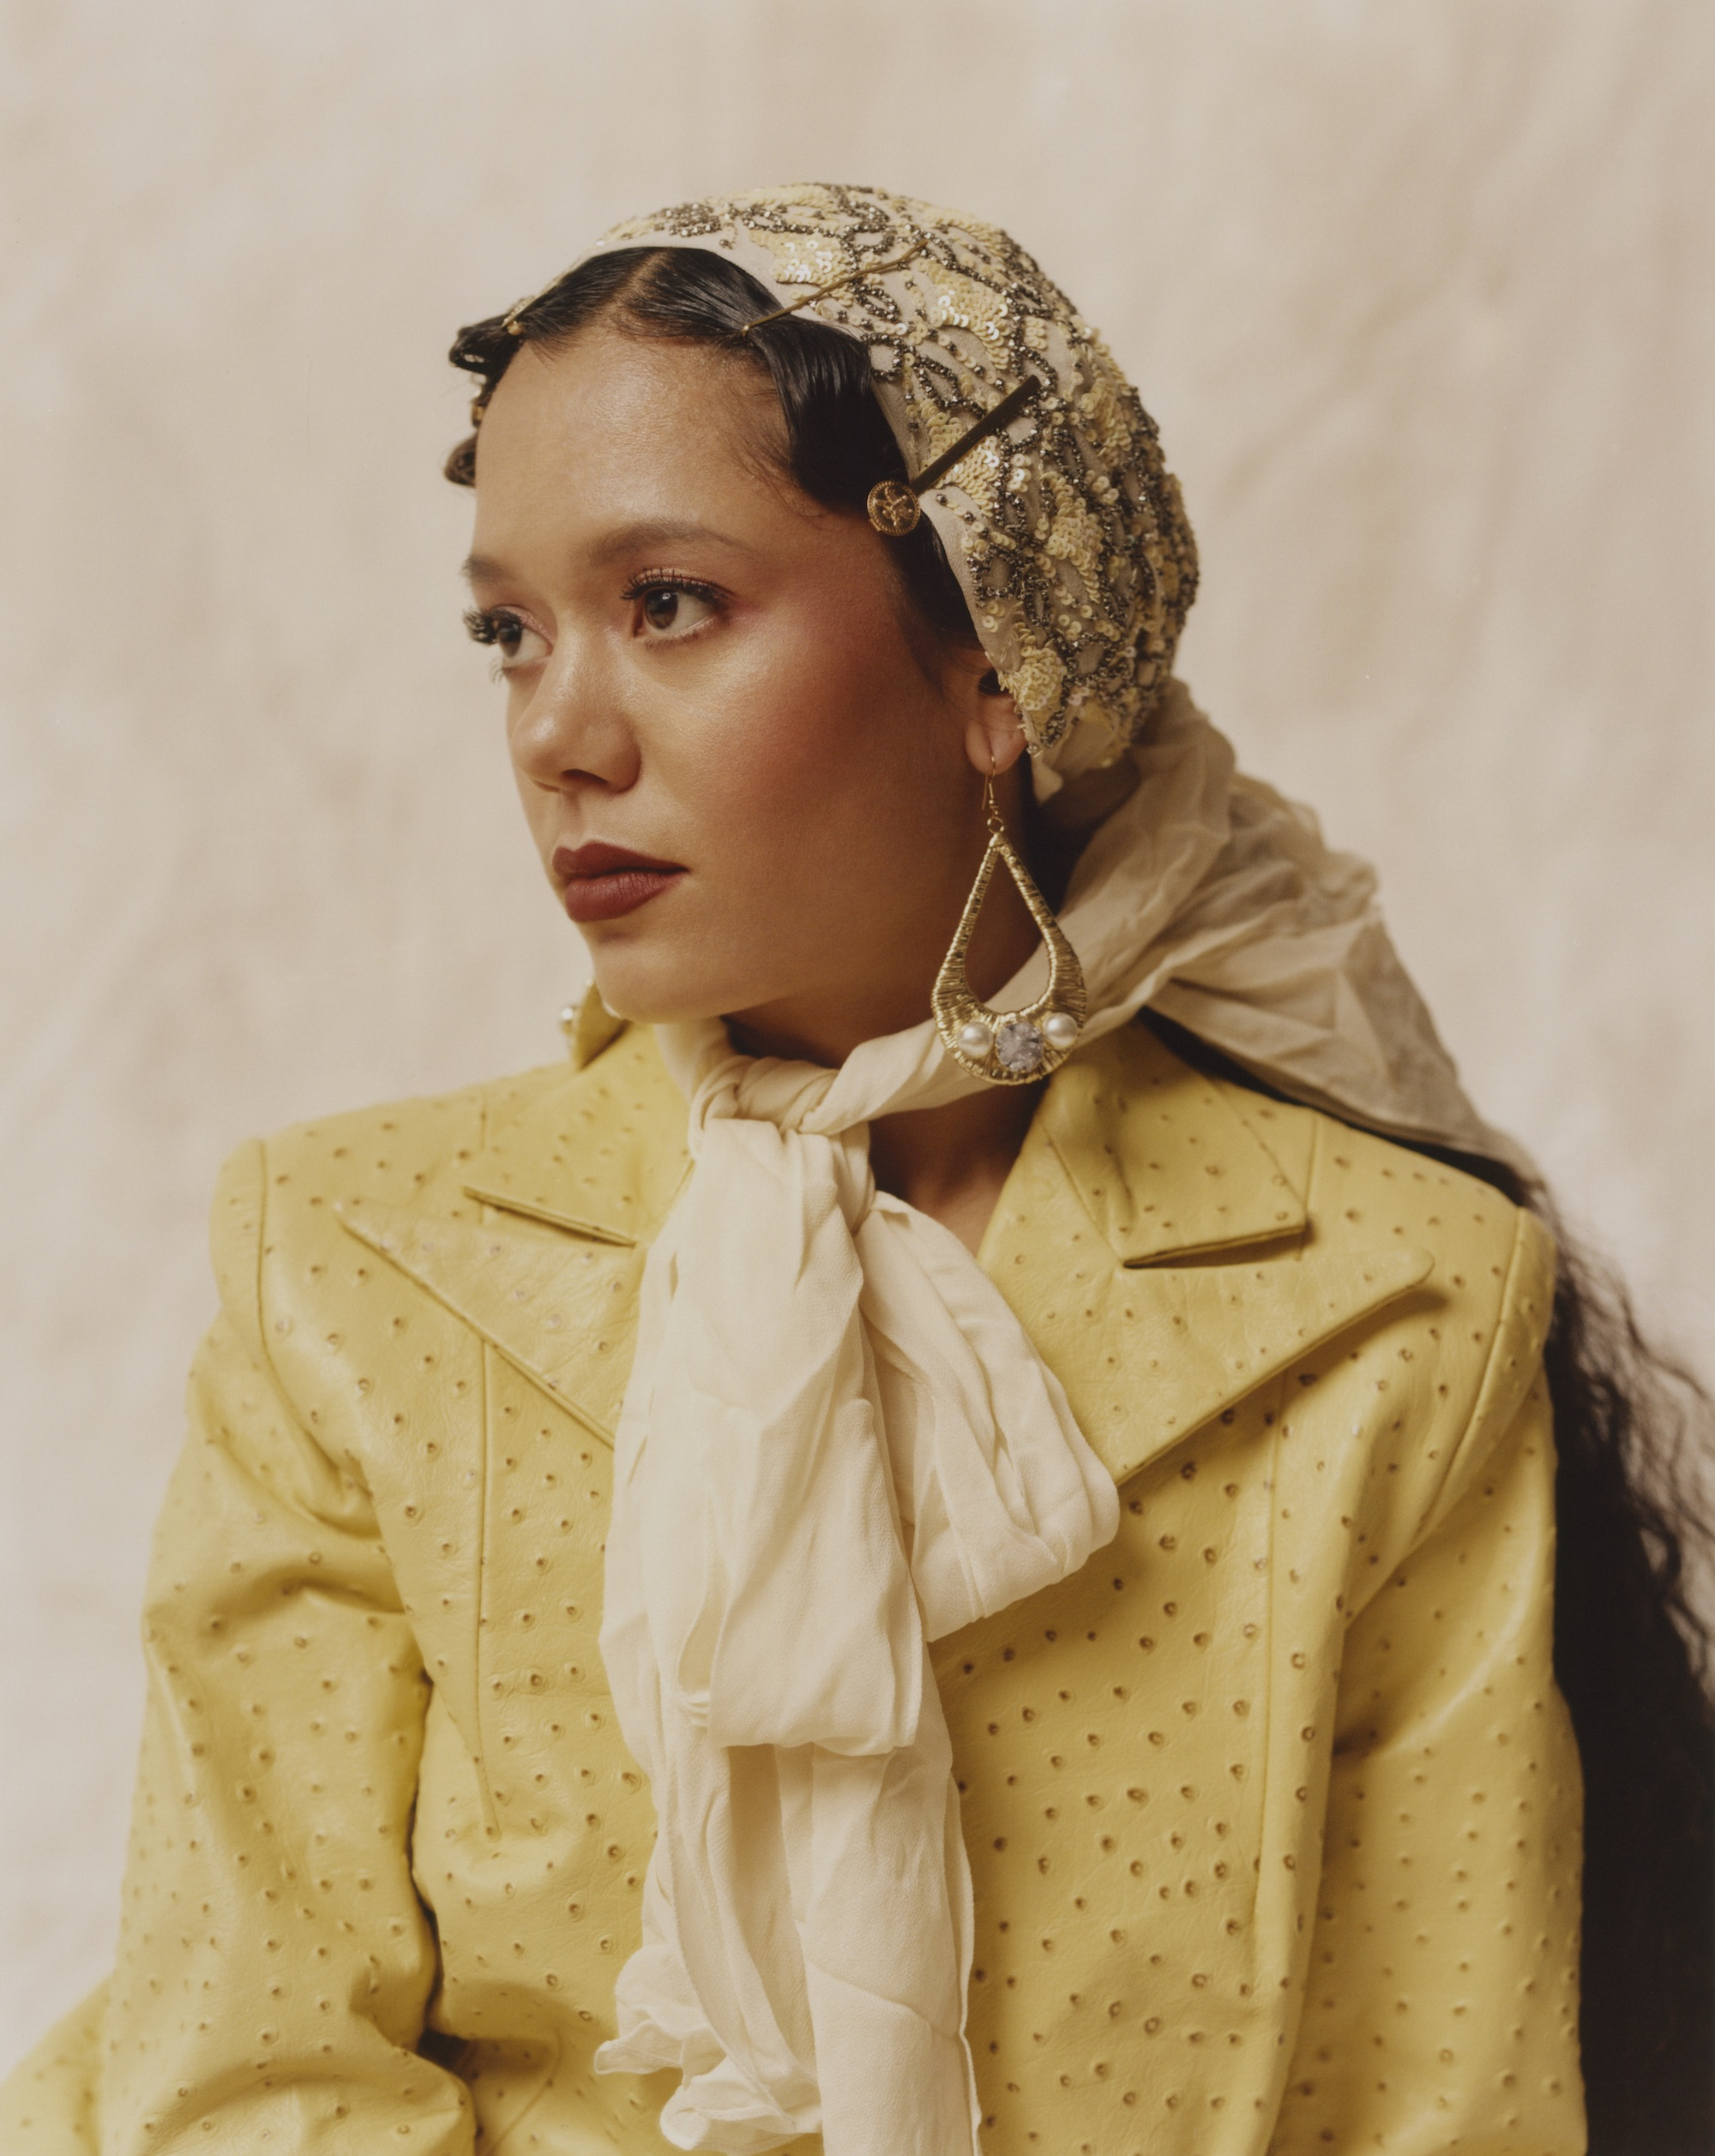 Tara Lily in yellow scarf and jacket